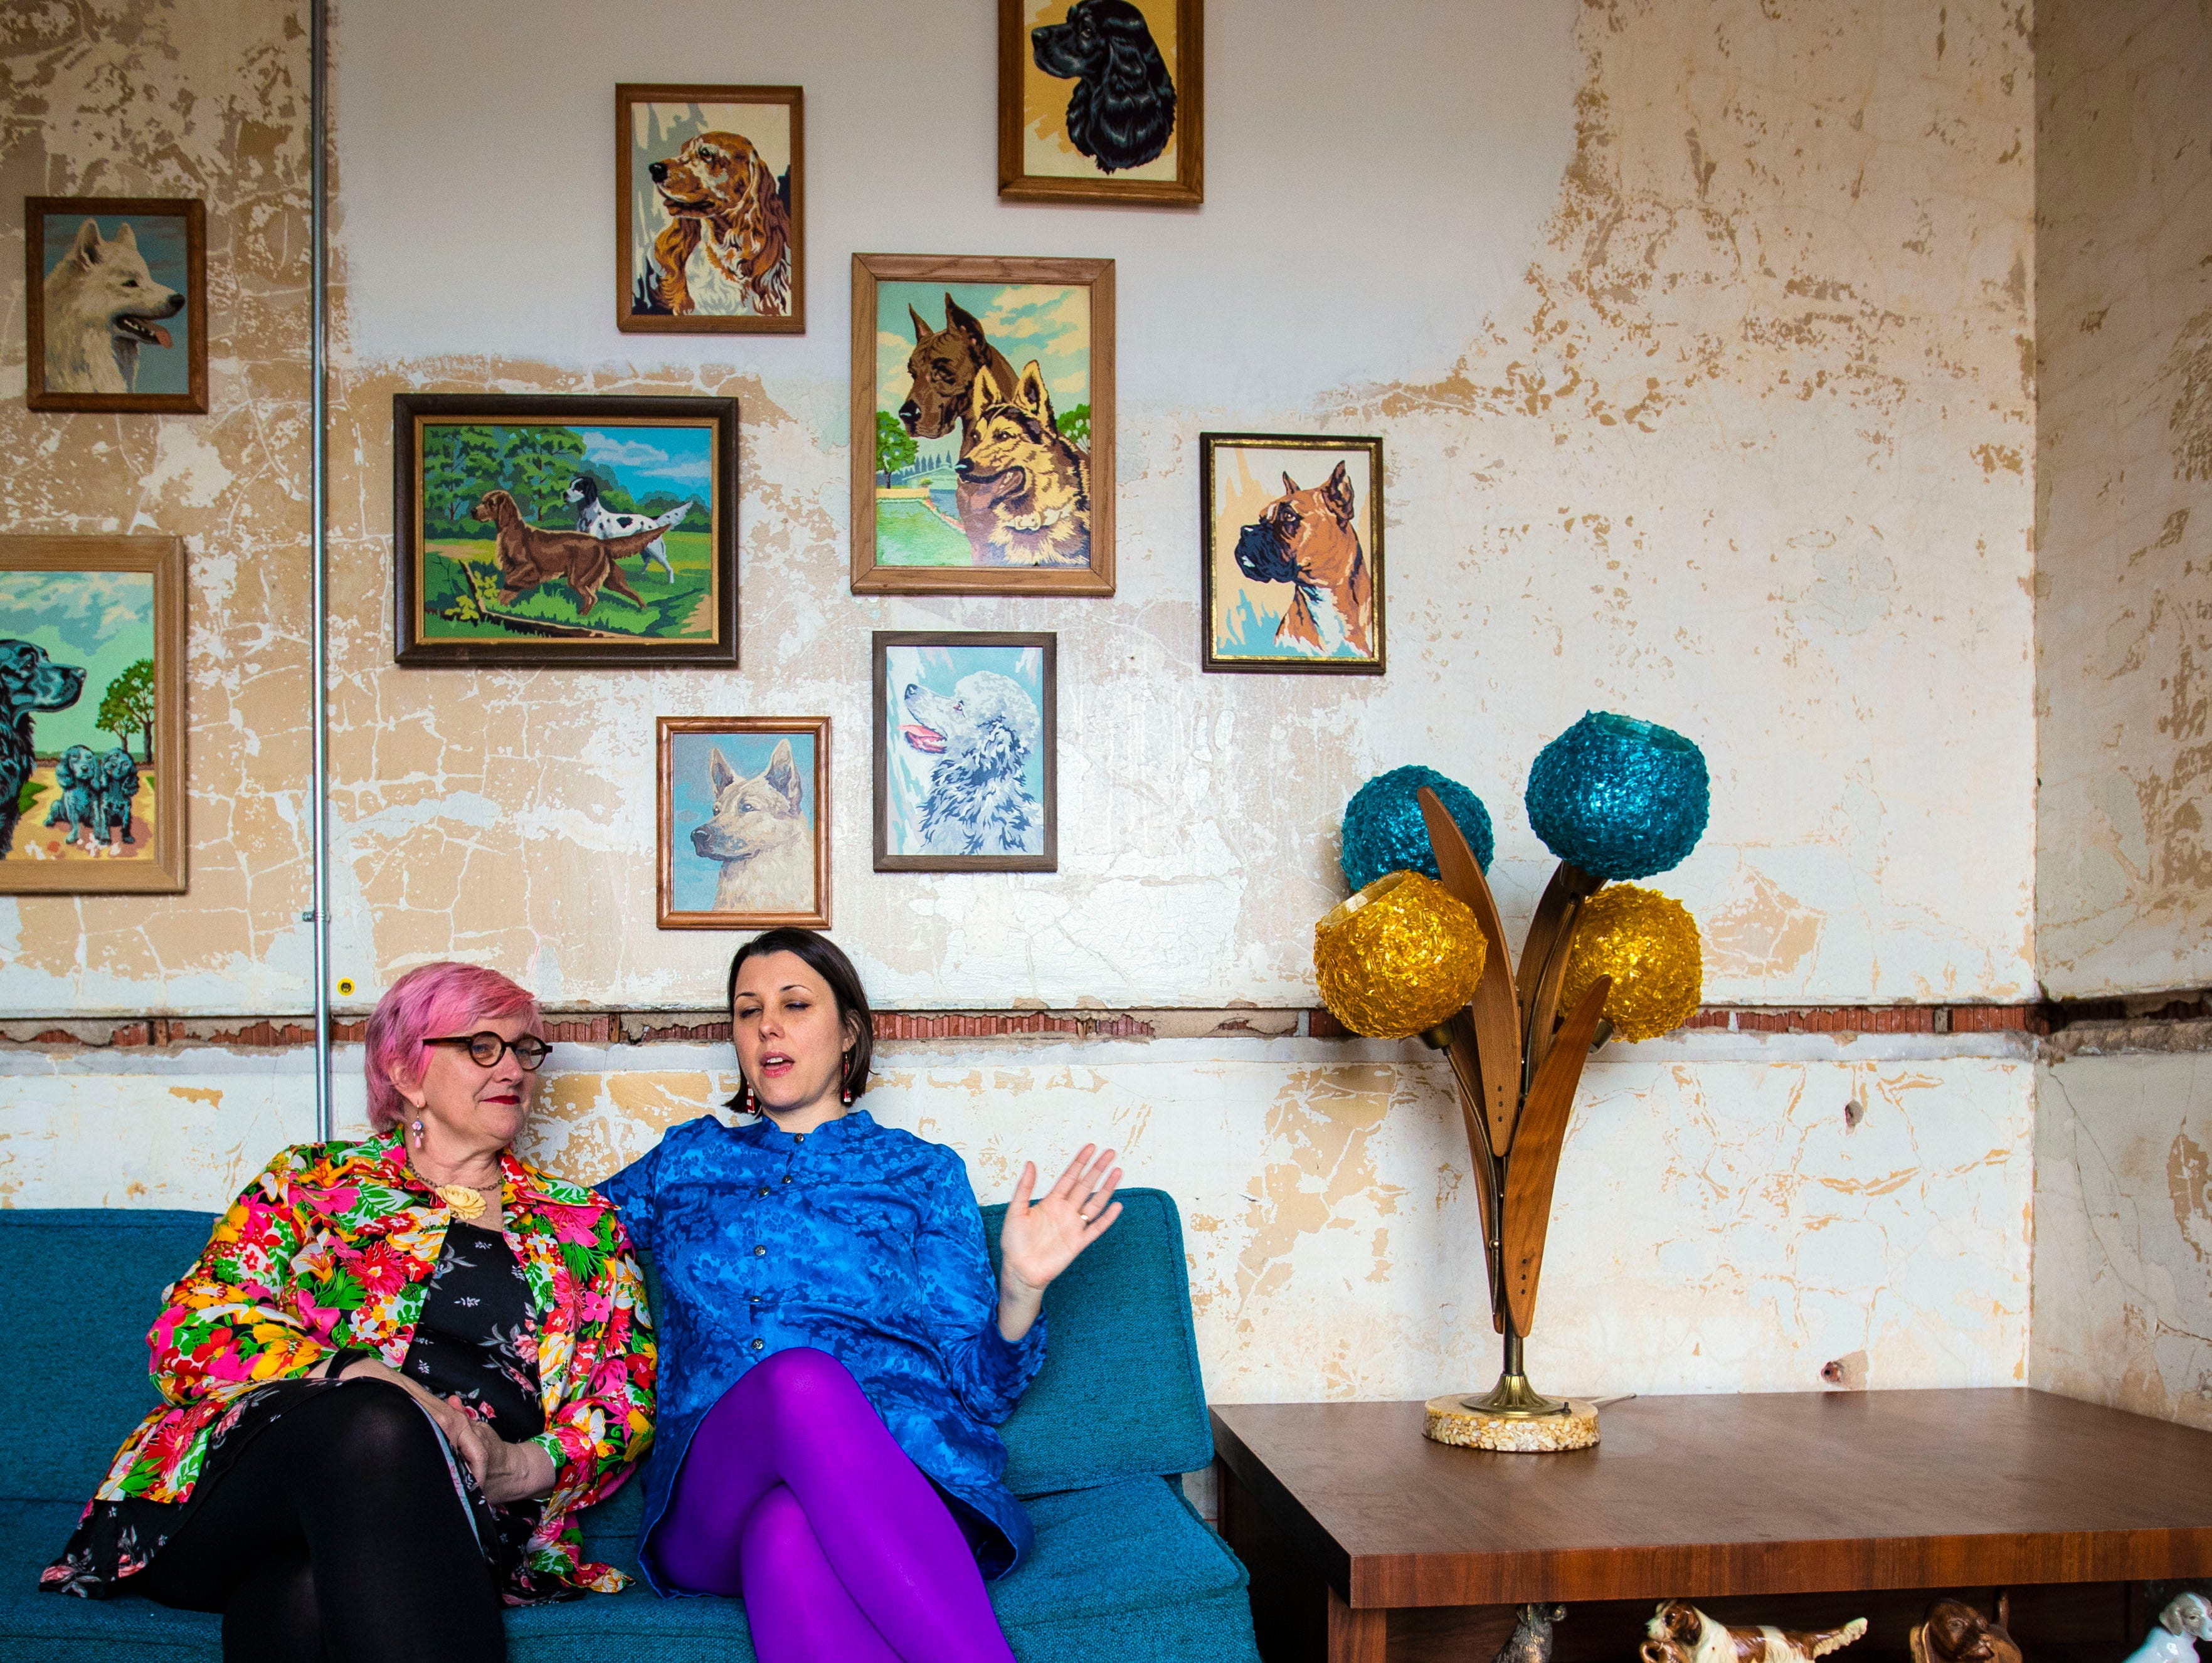 (Left) Amanda Sparks and Mary JoKarimnia, Crosstown Artsresidency directors, helped design the spaces in crosstown concourse. They handpicked the vintage furniture that decorates ArtBar.